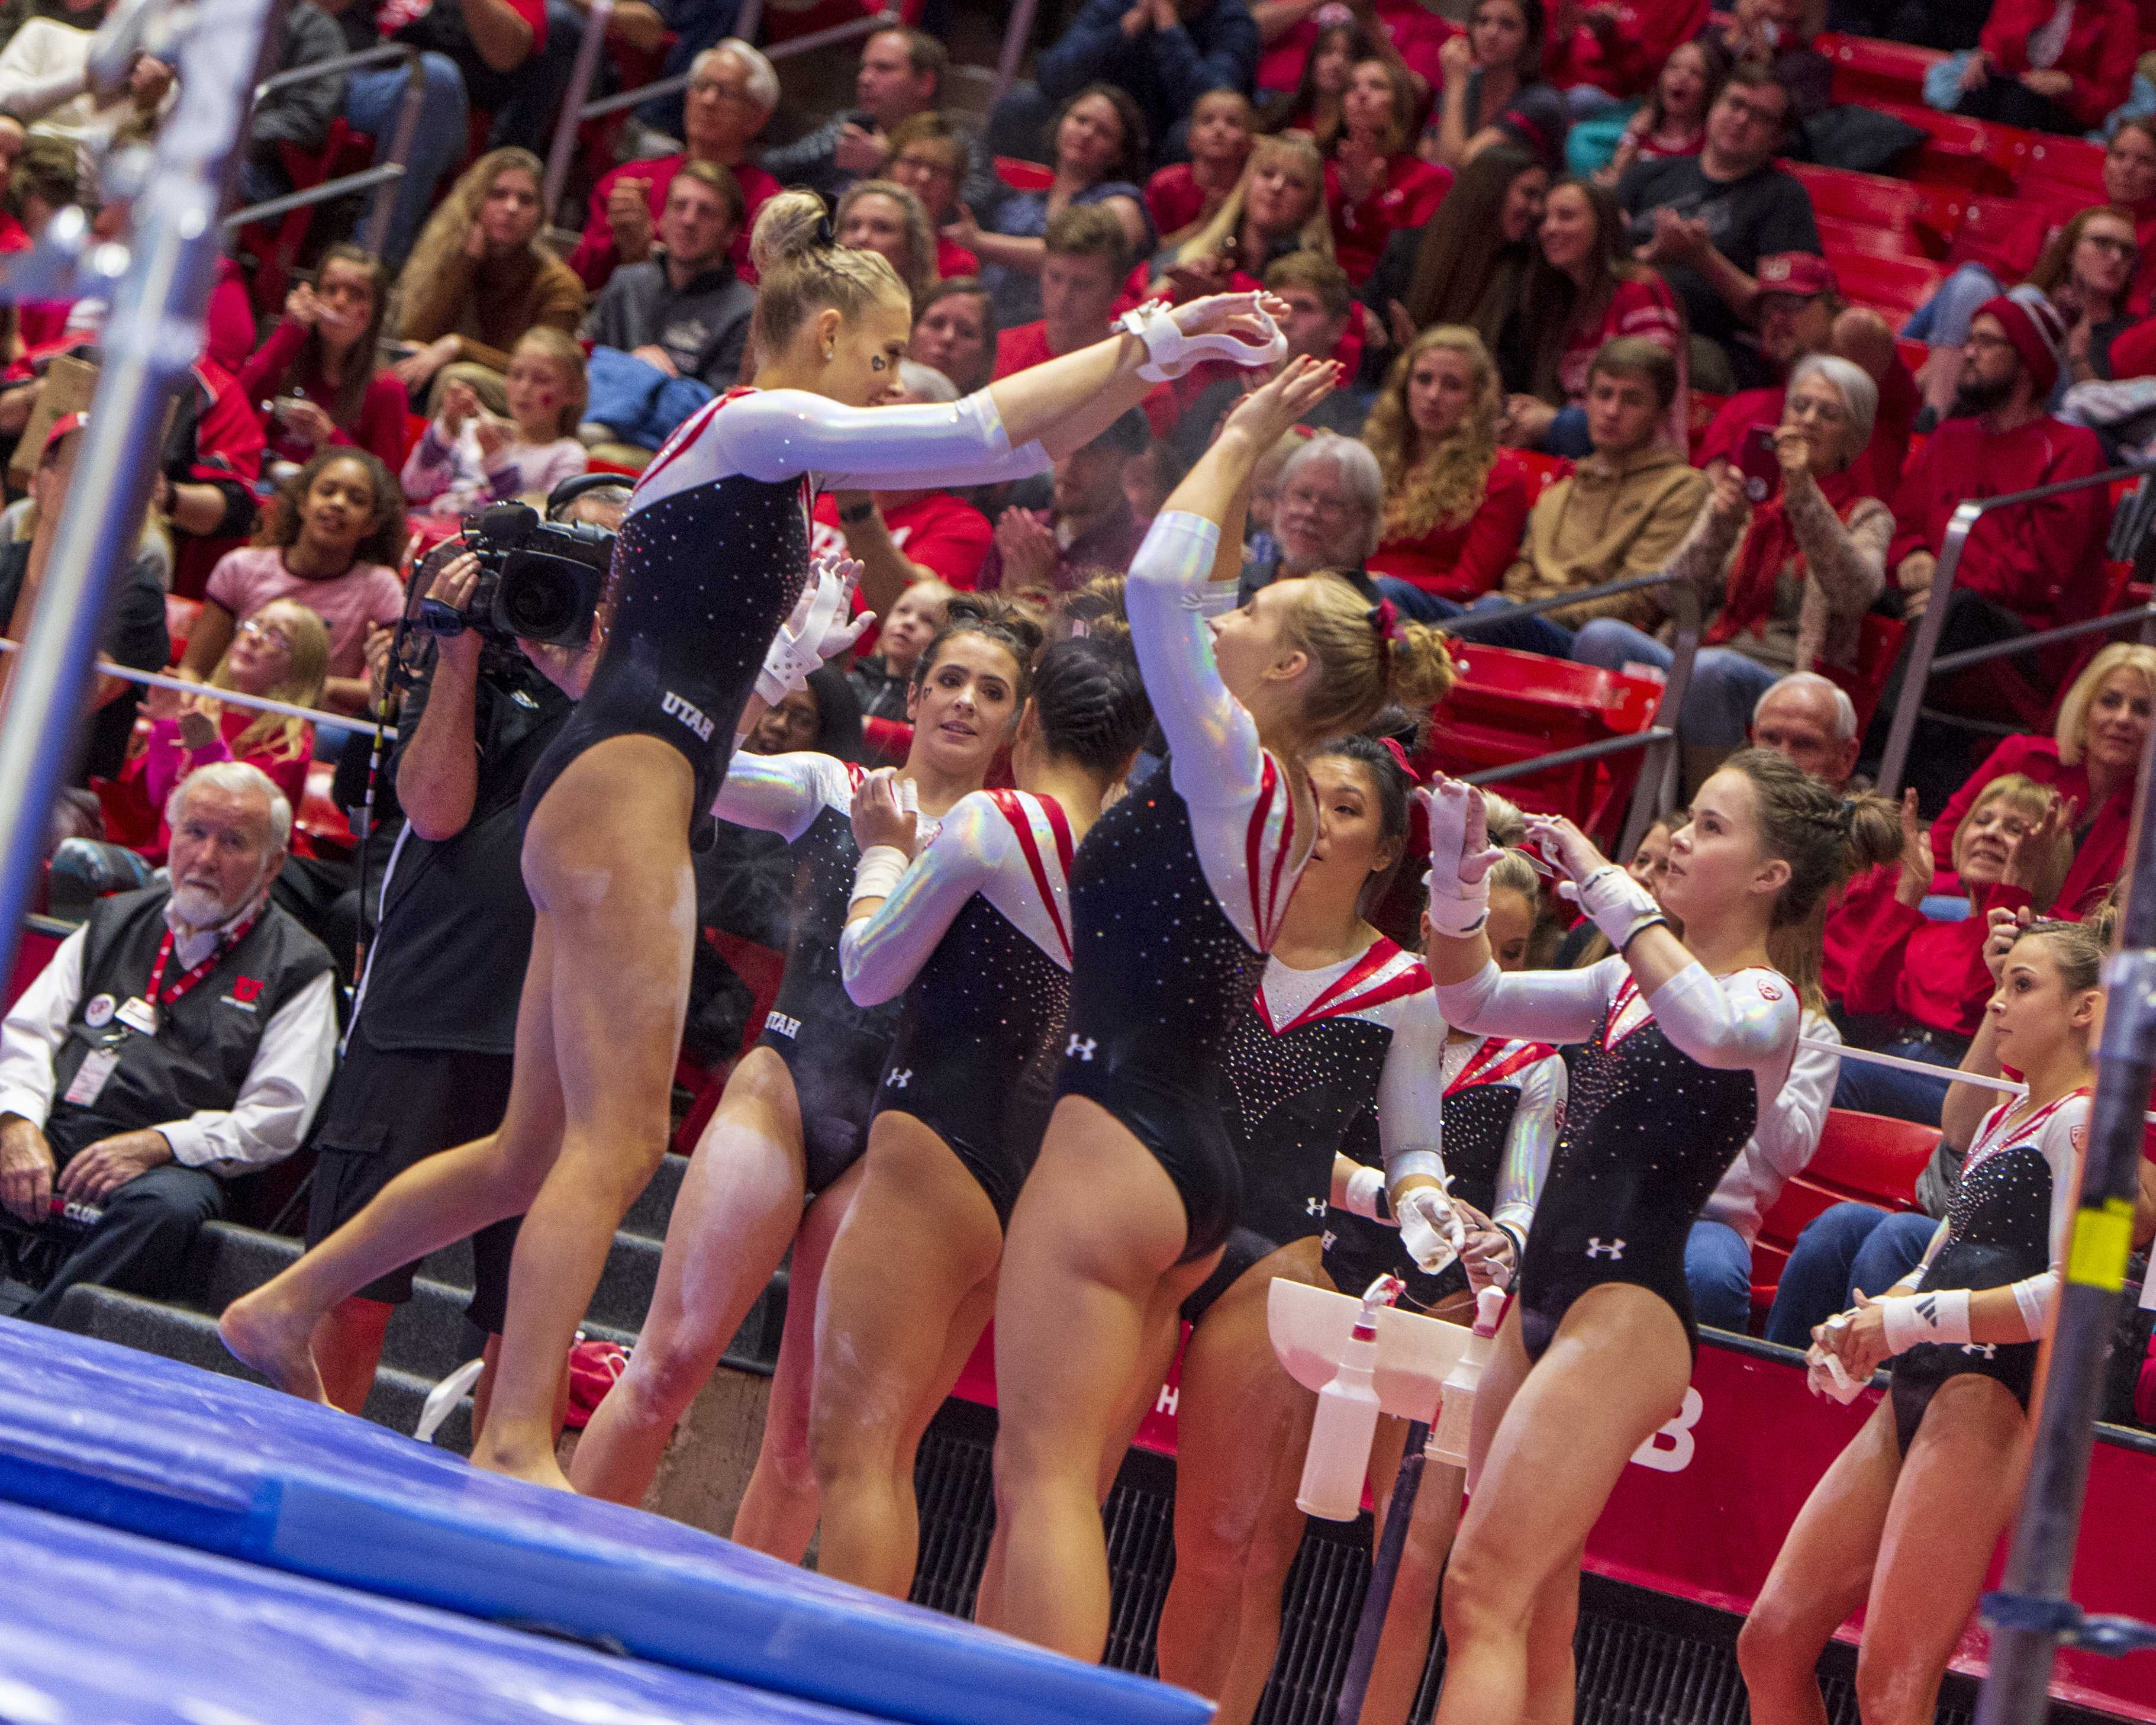 University of Utah women's gymnastics senior MaKenna Merrell-Giles performs on the uneven bars in the Red Rock preview at the Jon M. Huntsman Center in Salt Lake City, Utah on Friday, Dec. 7, 2018.  (Photo by Kiffer Creveling | The Daily Utah Chronicle)